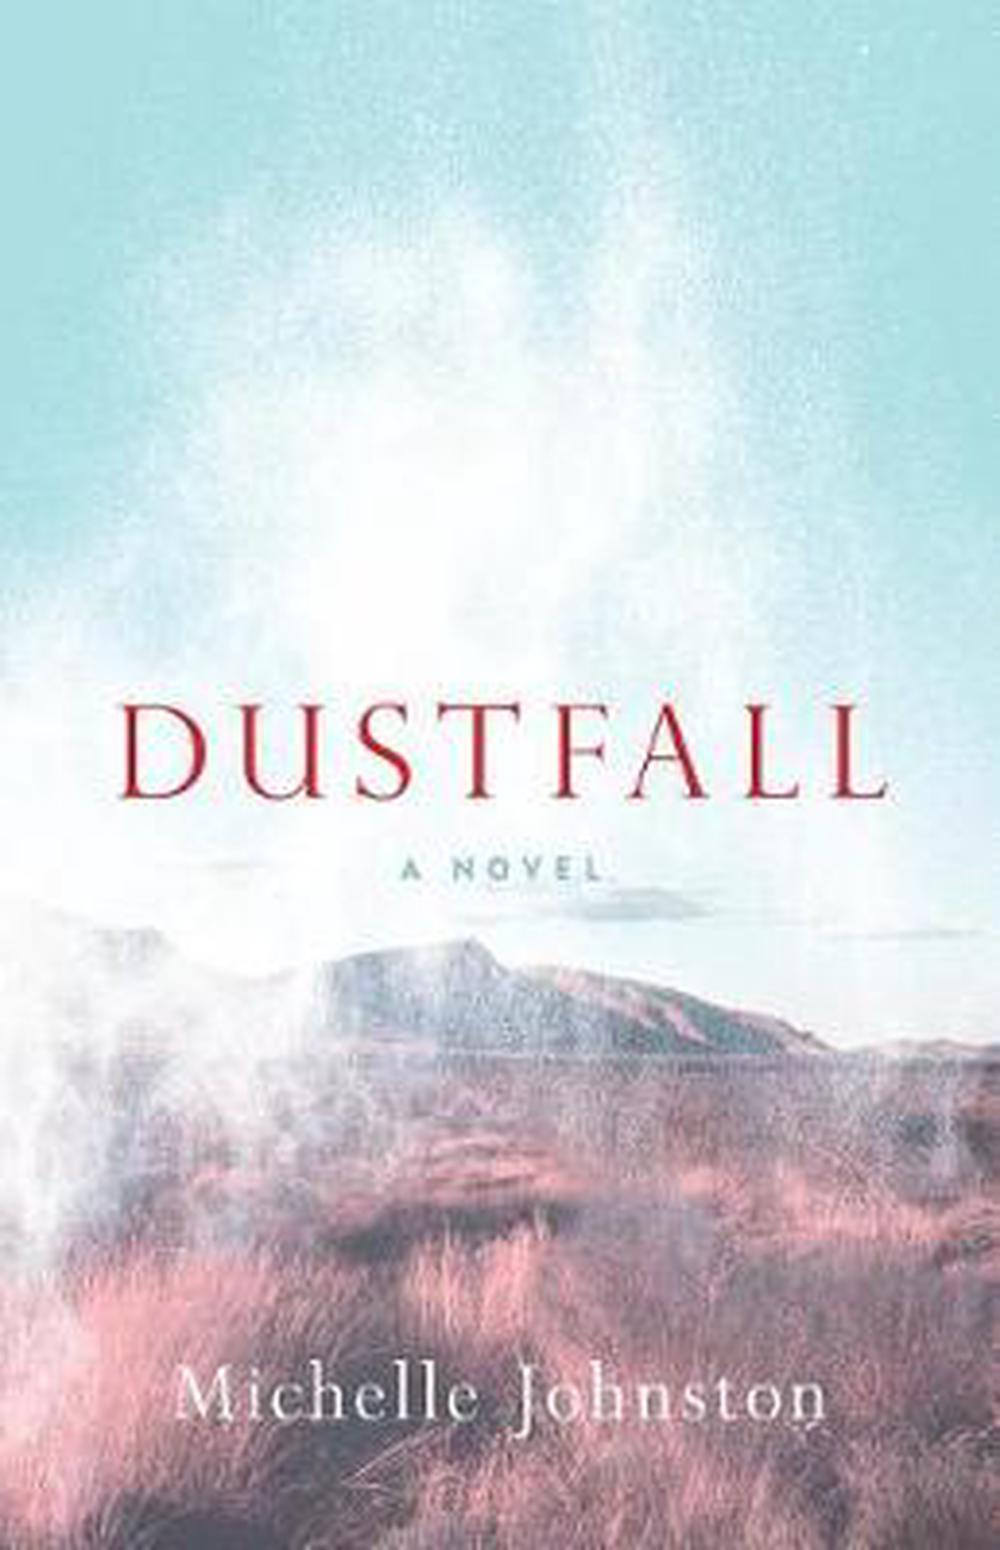 DustfallA Novel